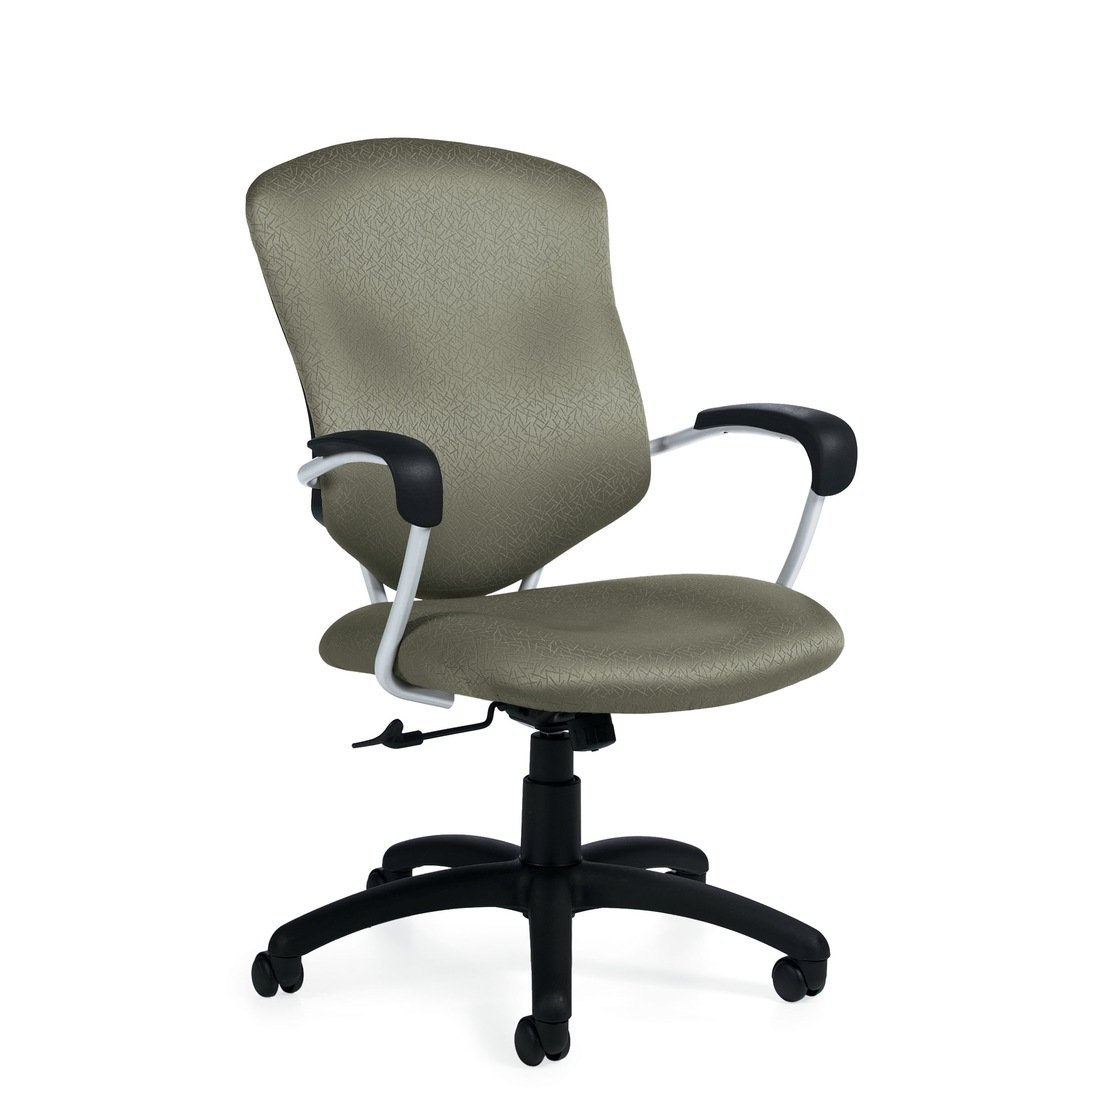 Supra high back tilter chair, model 5330-4. This chair has been placed on a white background.